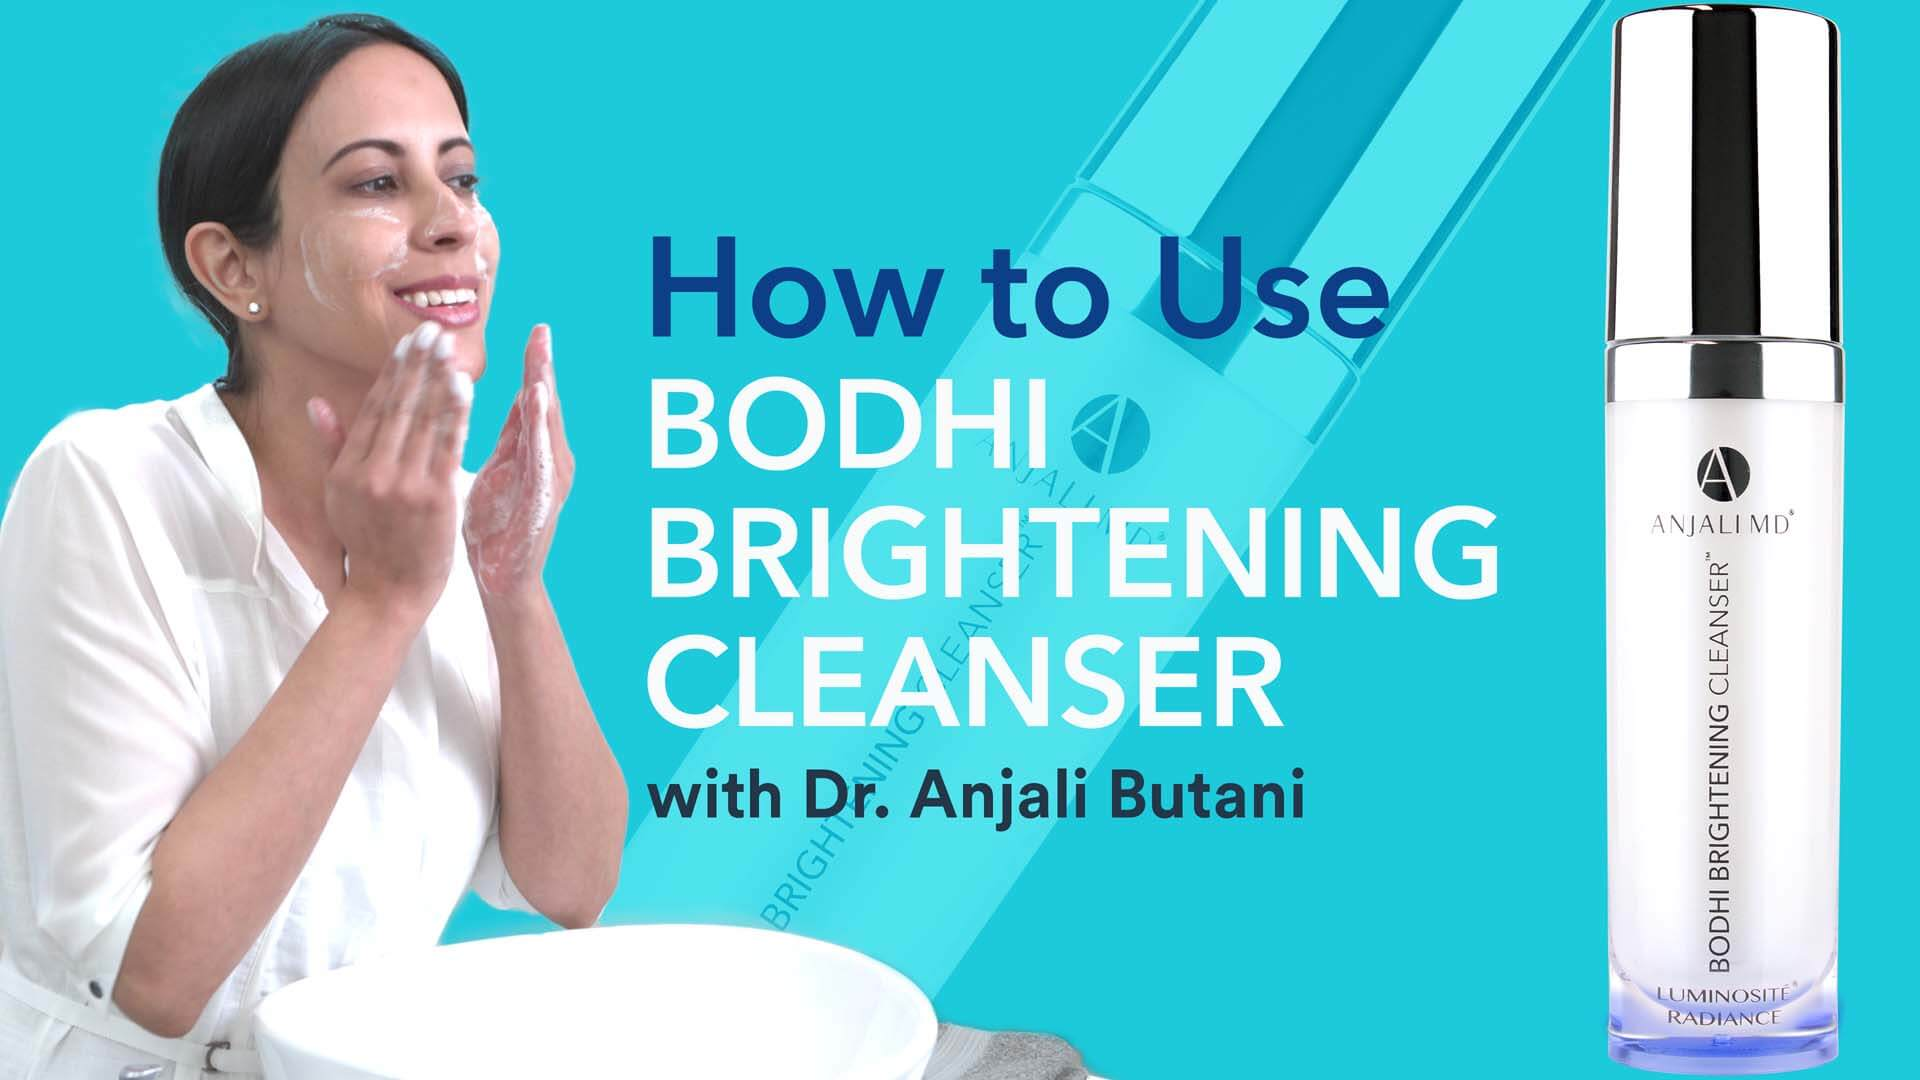 BODHI BRIGHTENING CLEANSER How To Use Video